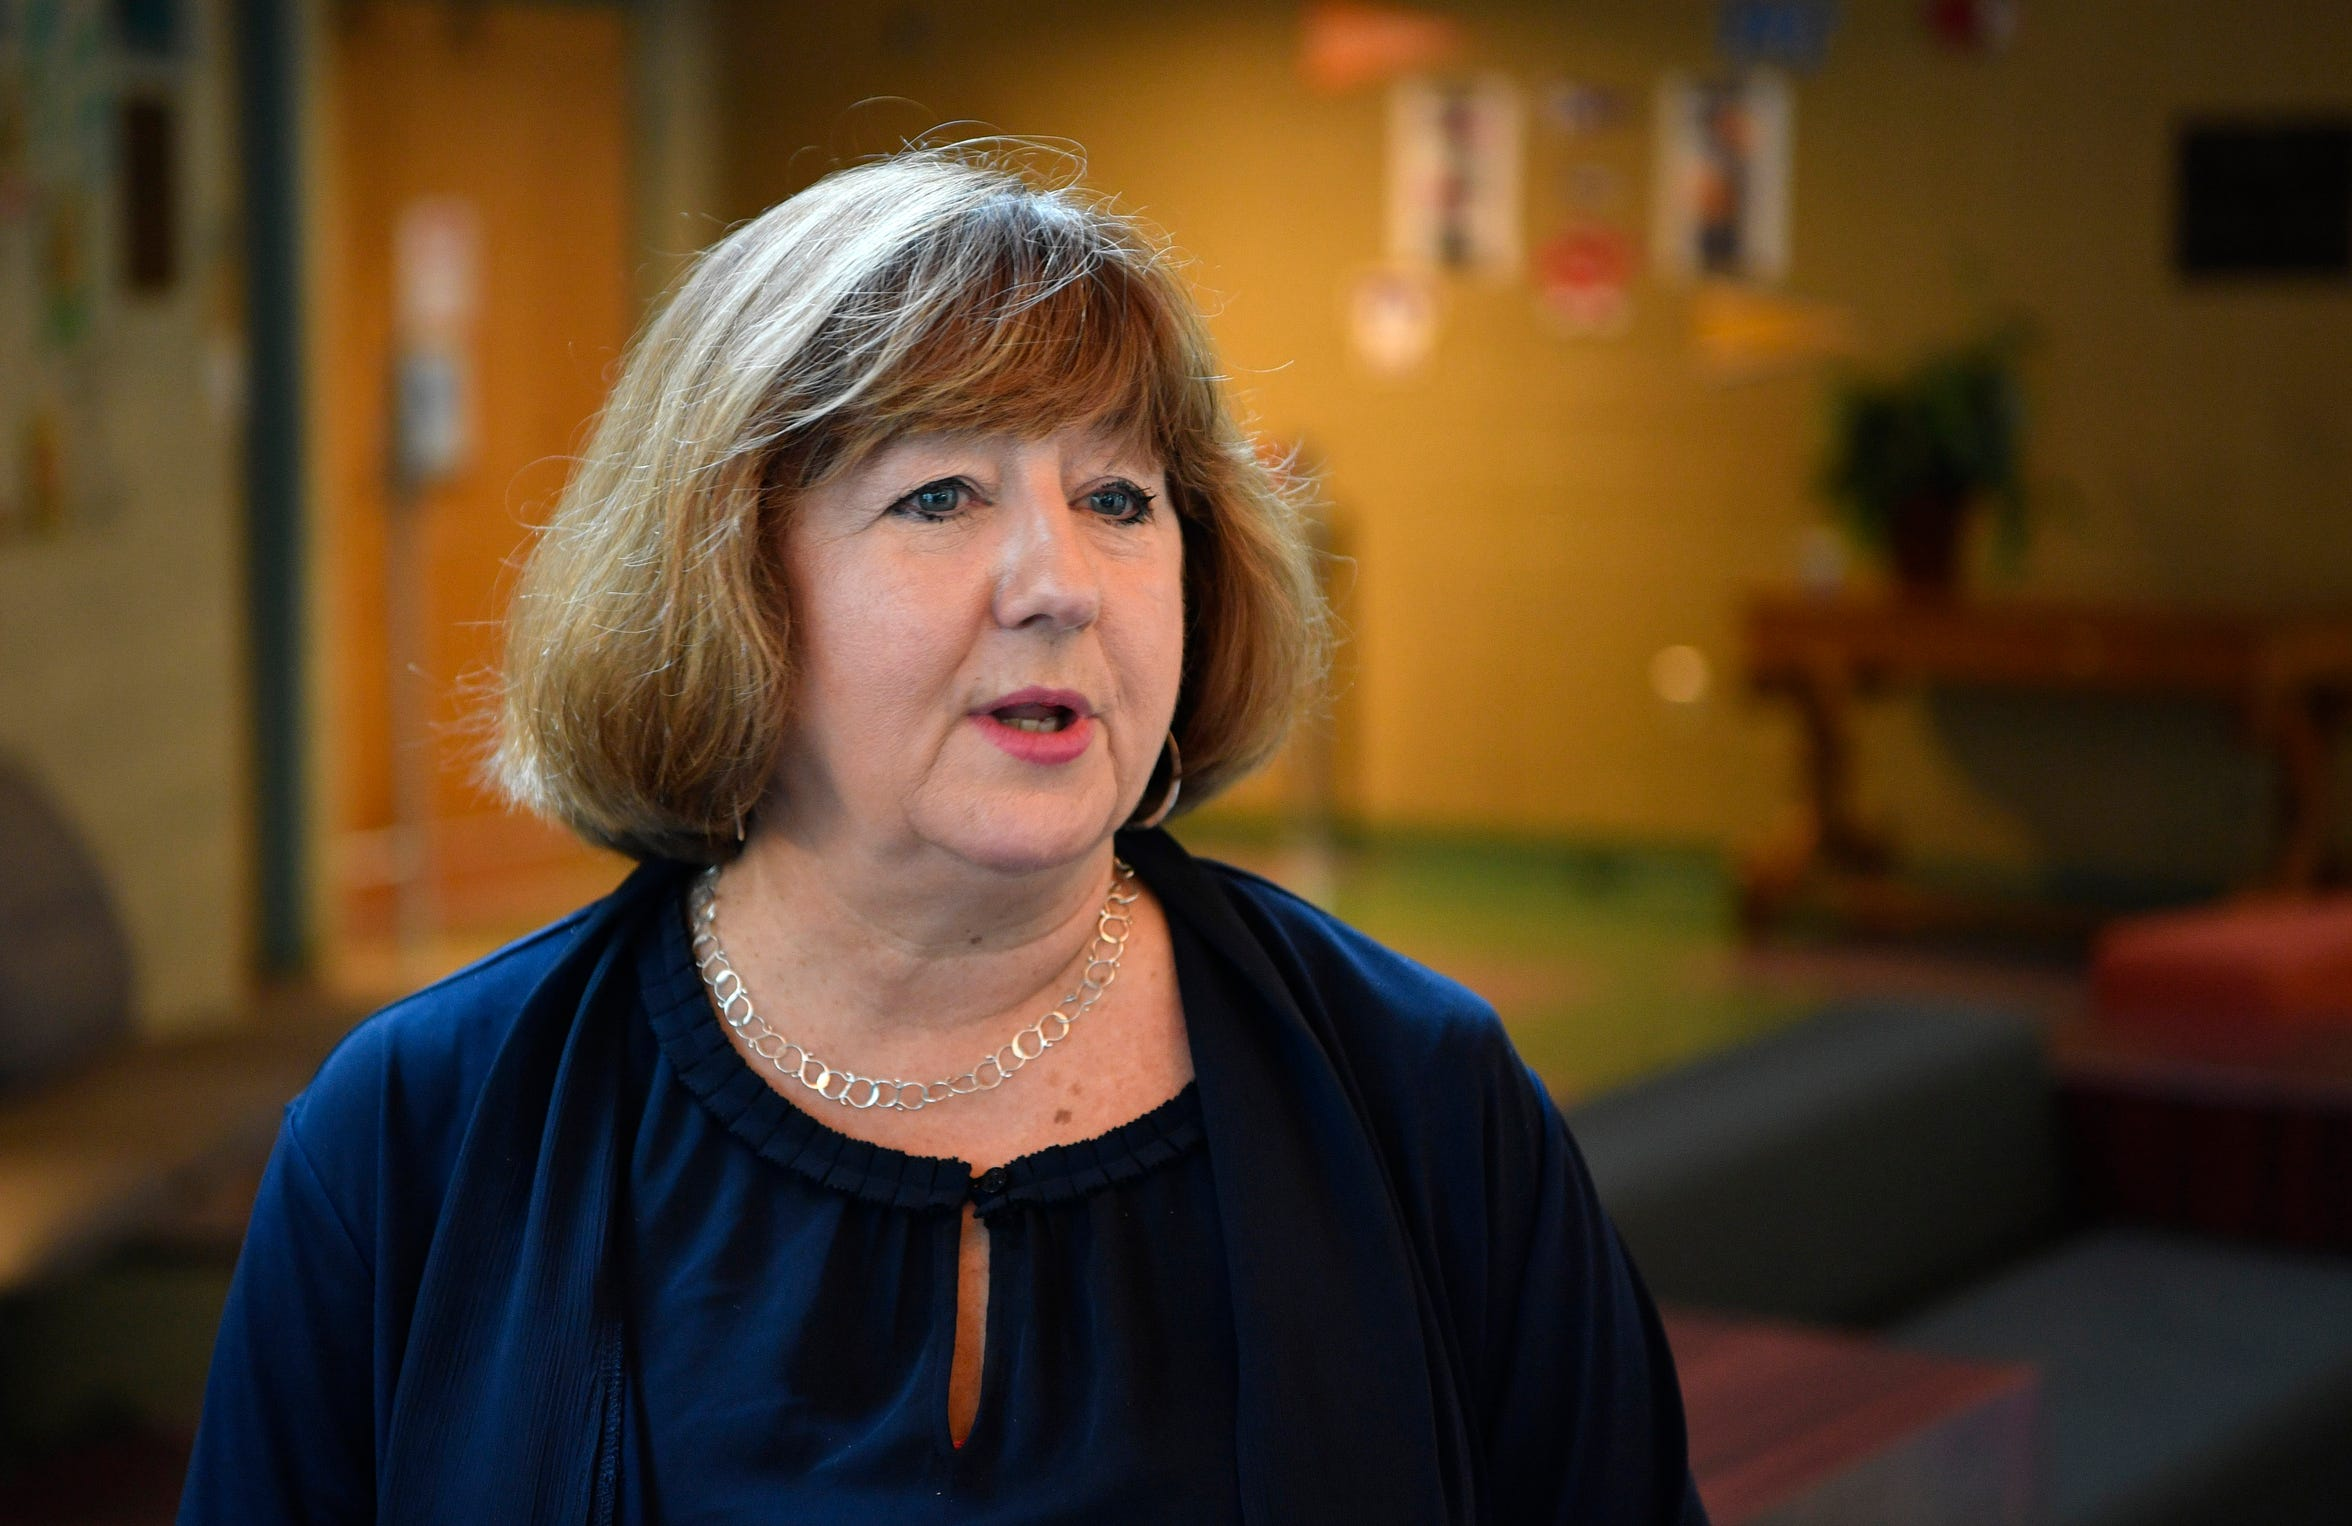 Martha O'Bryan Center CEO Marsha Edwards said the nonprofit has not strayed from its mission to serve and uplift communities struggling with generational poverty.